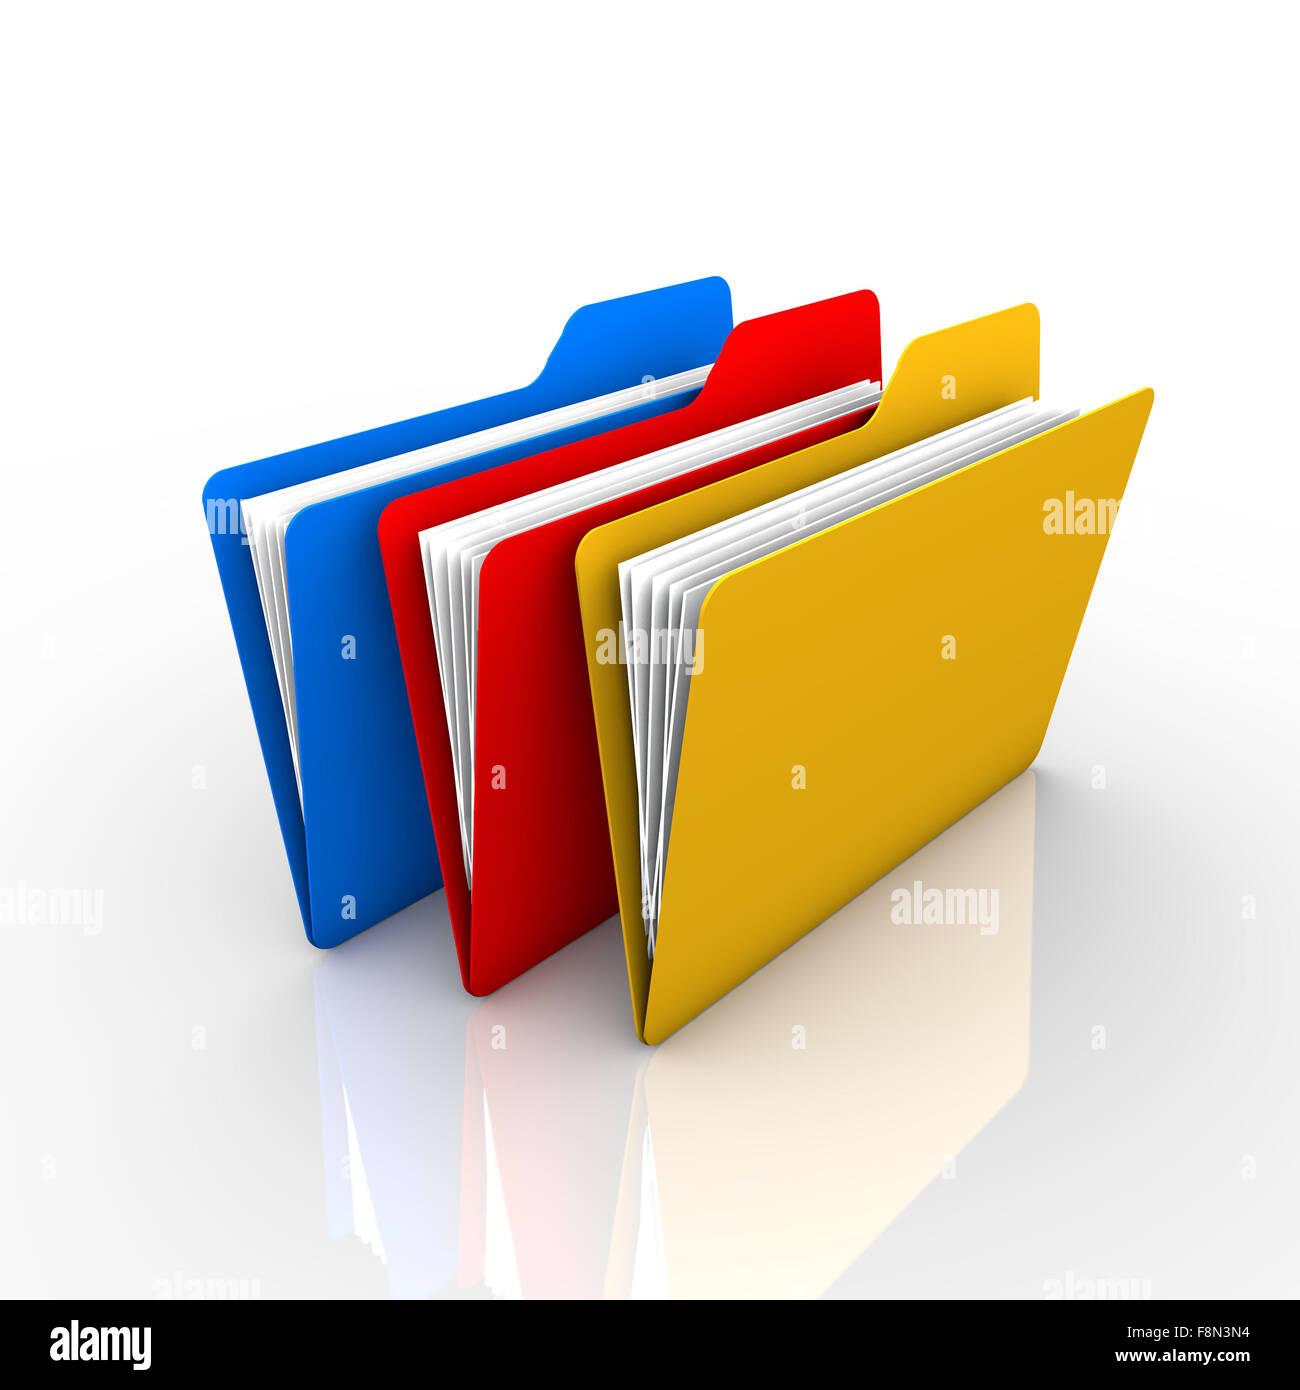 3-color folder, as described in the filing of documents and visual. The presentation and available on the internet - Stock Image